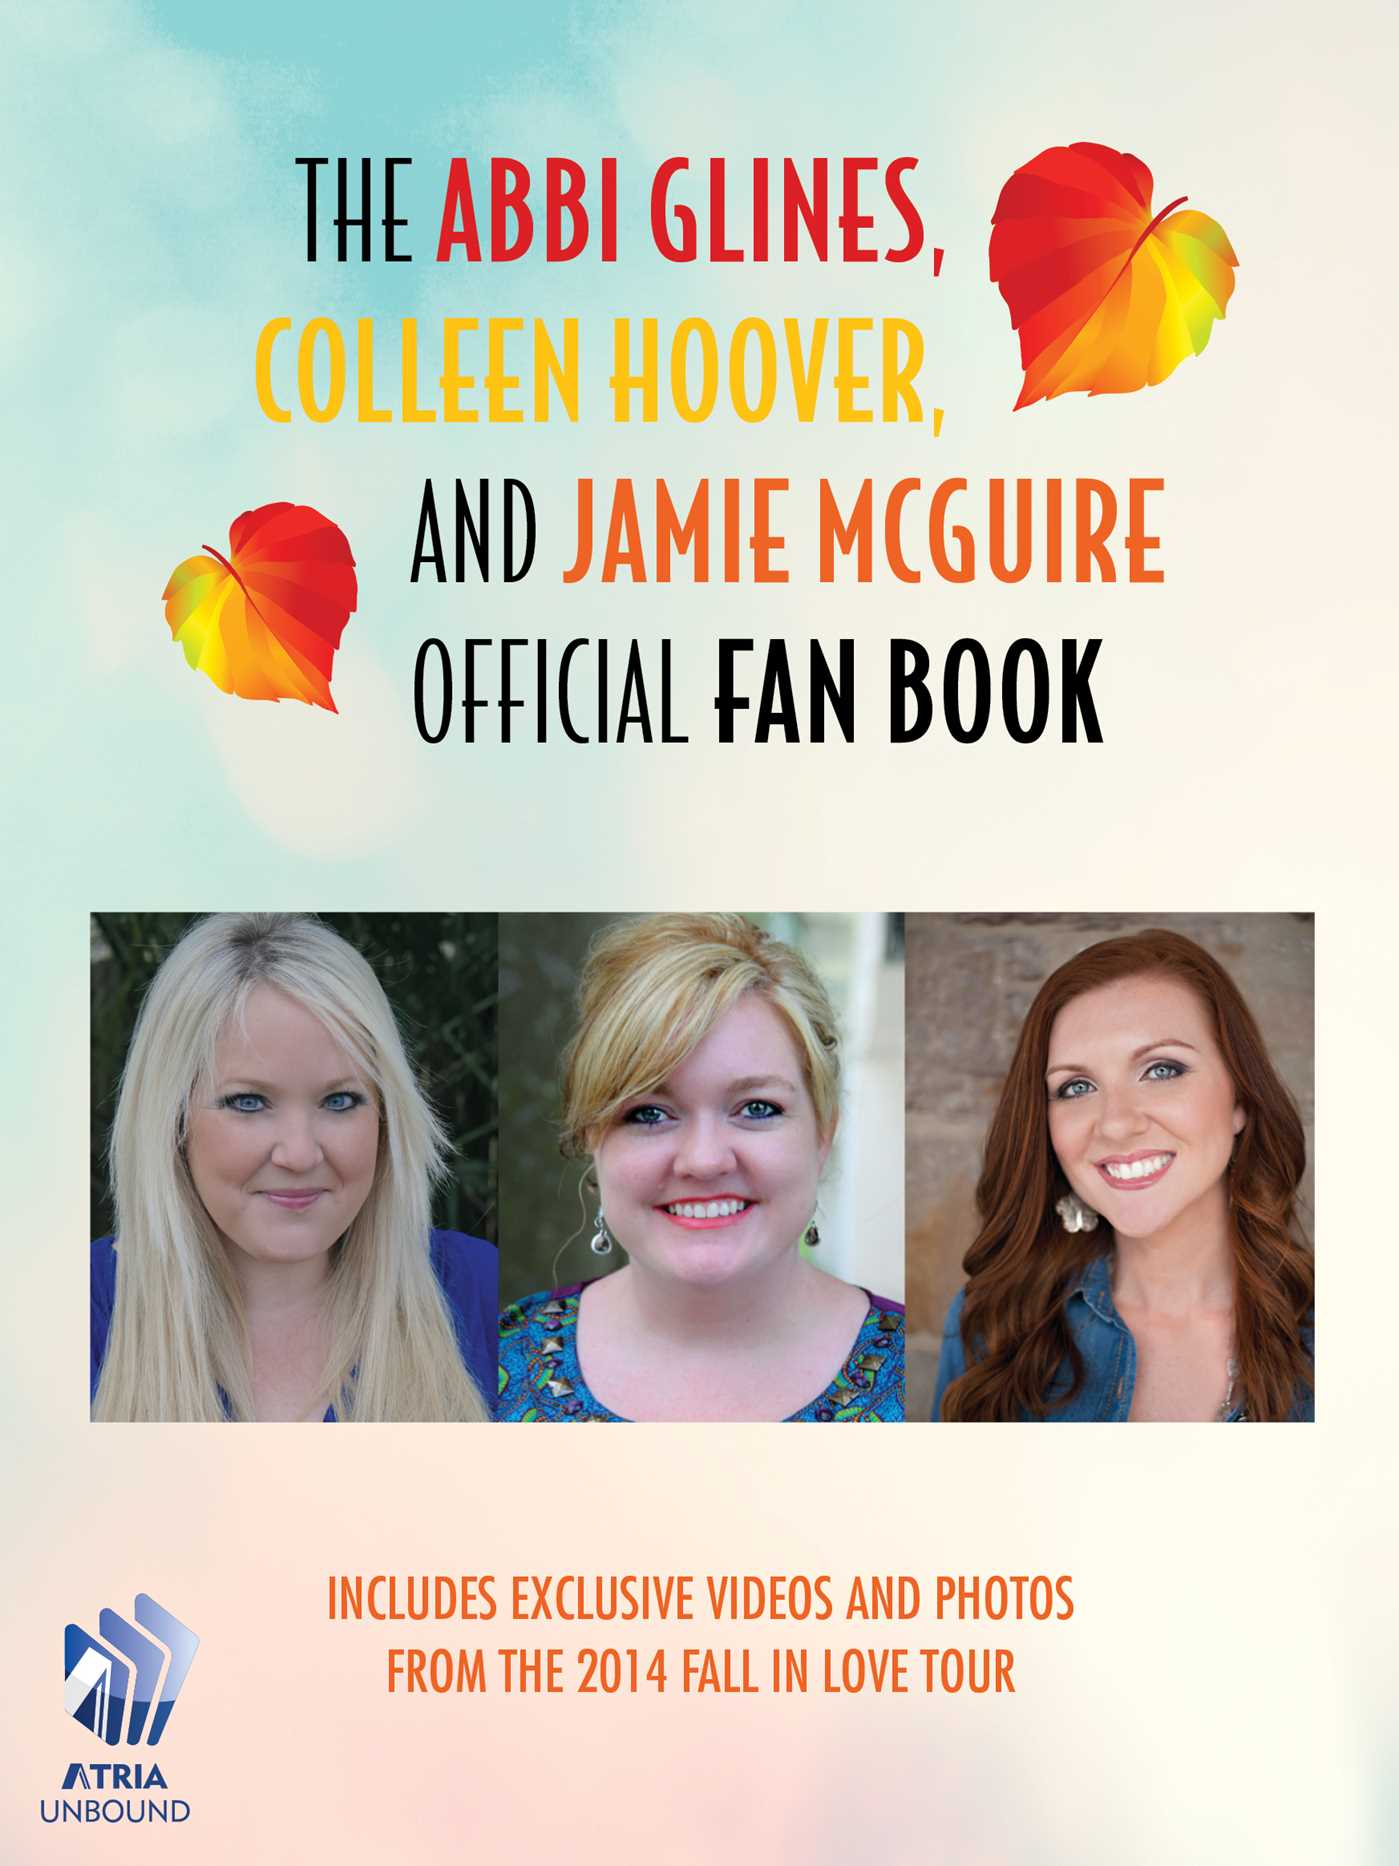 The abbi glines colleen hoover and jamie mcguire official fan book the abbi glines colleen hoover and jamie mcguire official fan book 9781501100369 hr fandeluxe Choice Image